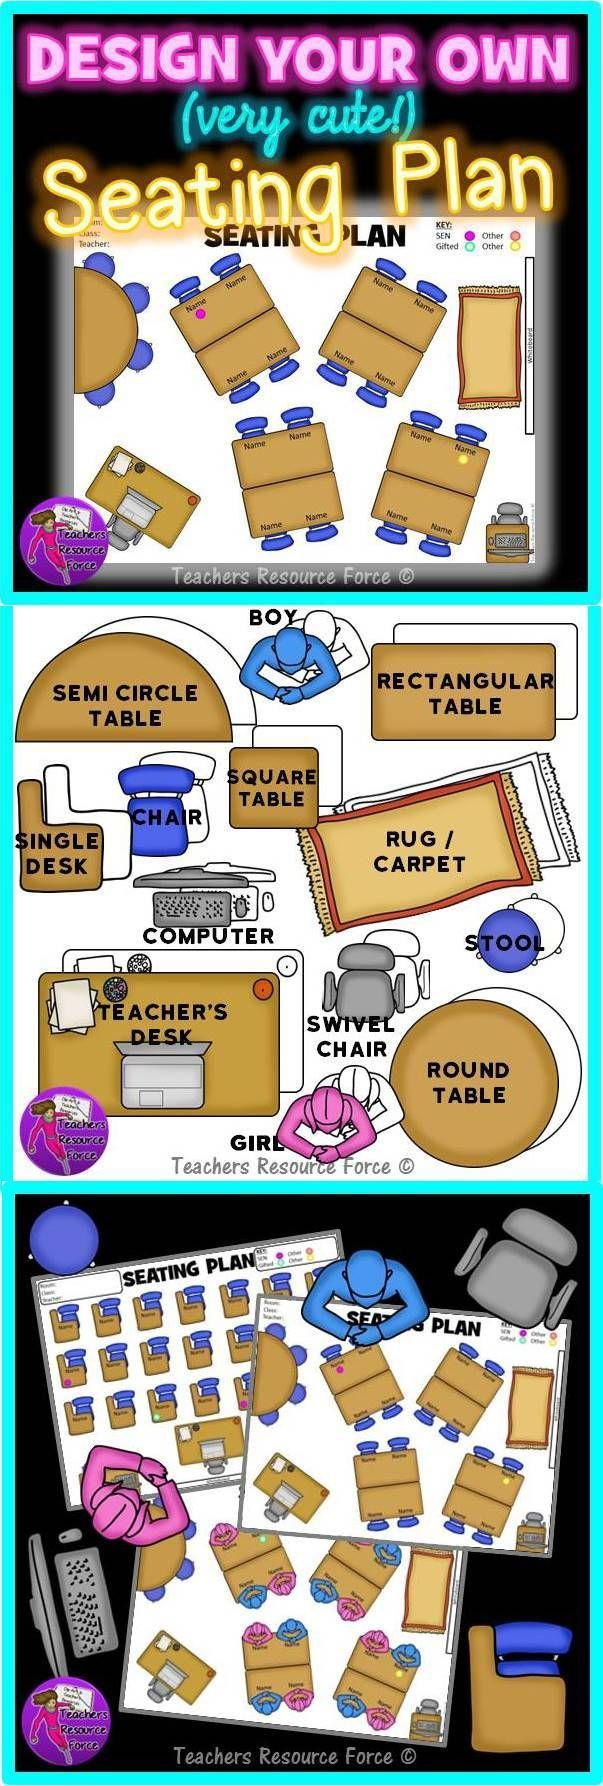 Classroom Design That Works Every Time ~ Best ideas about seating chart classroom on pinterest